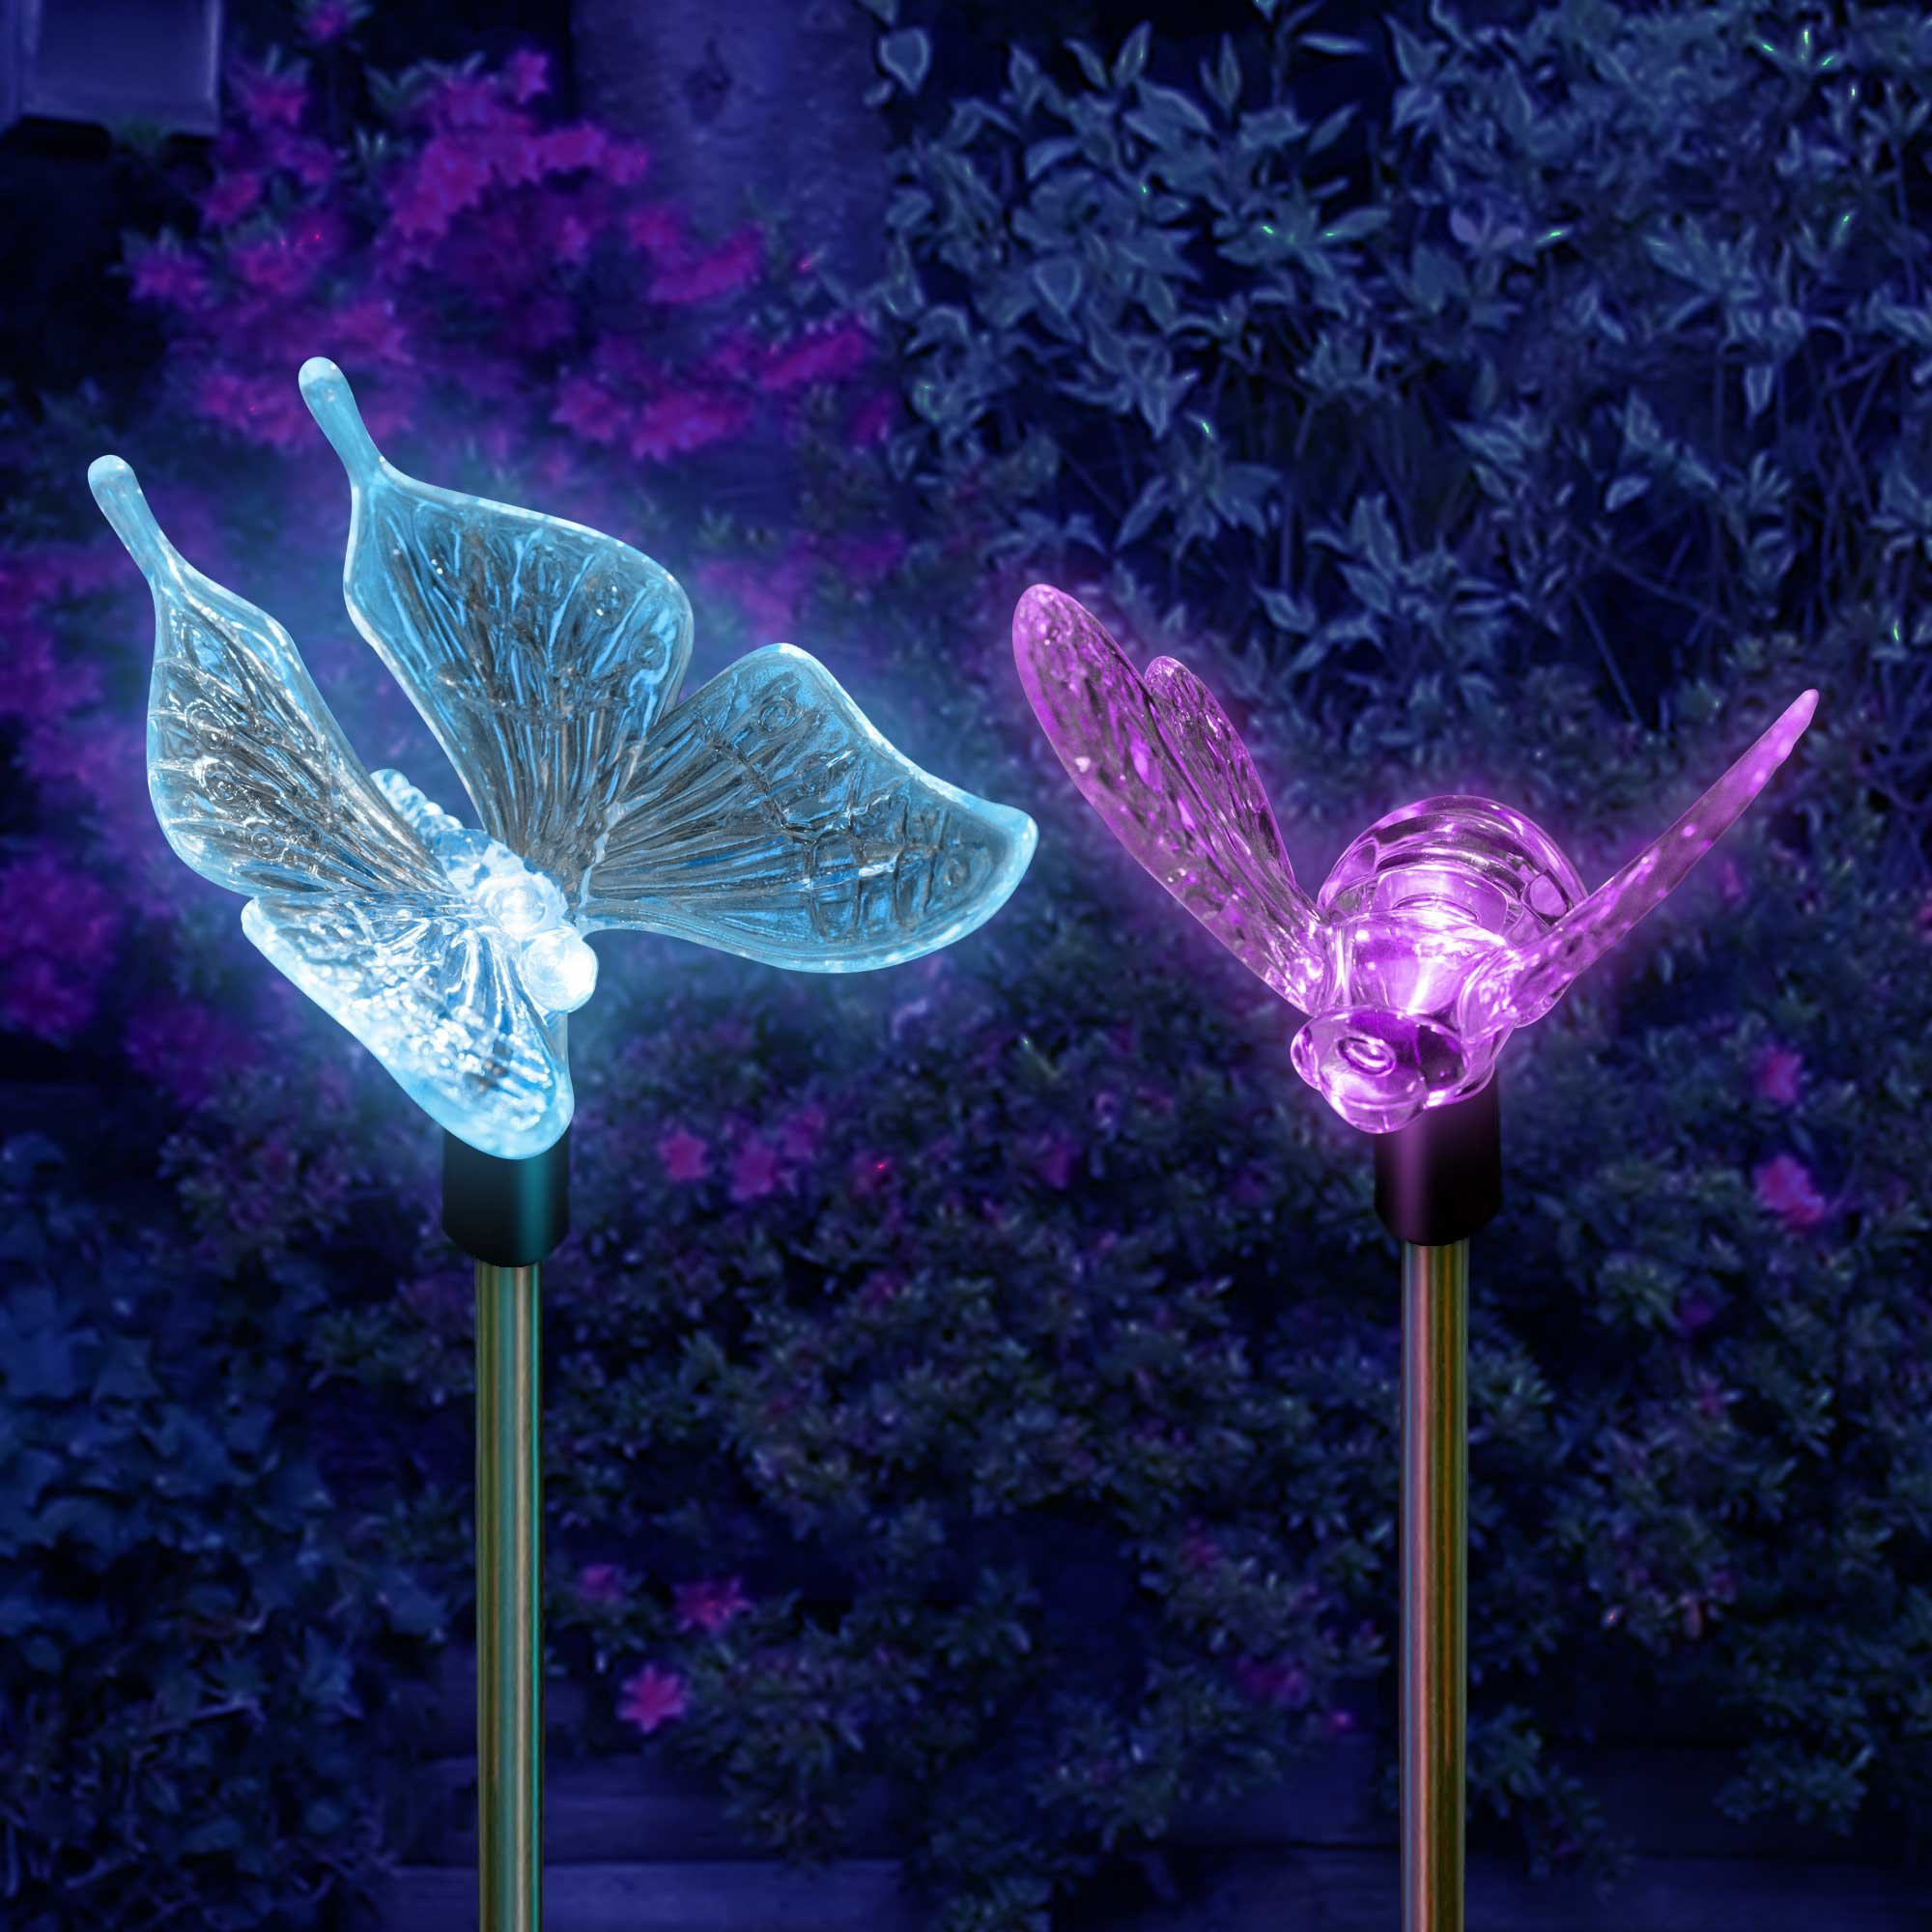 SolarDuke Solar Garden Outdoor Stake Lights Butterfly and Bumble Bee Garden Lighting Path Decoration Color Changing Patio Lawn Backyard Decor by SolarDuke (Image #4)